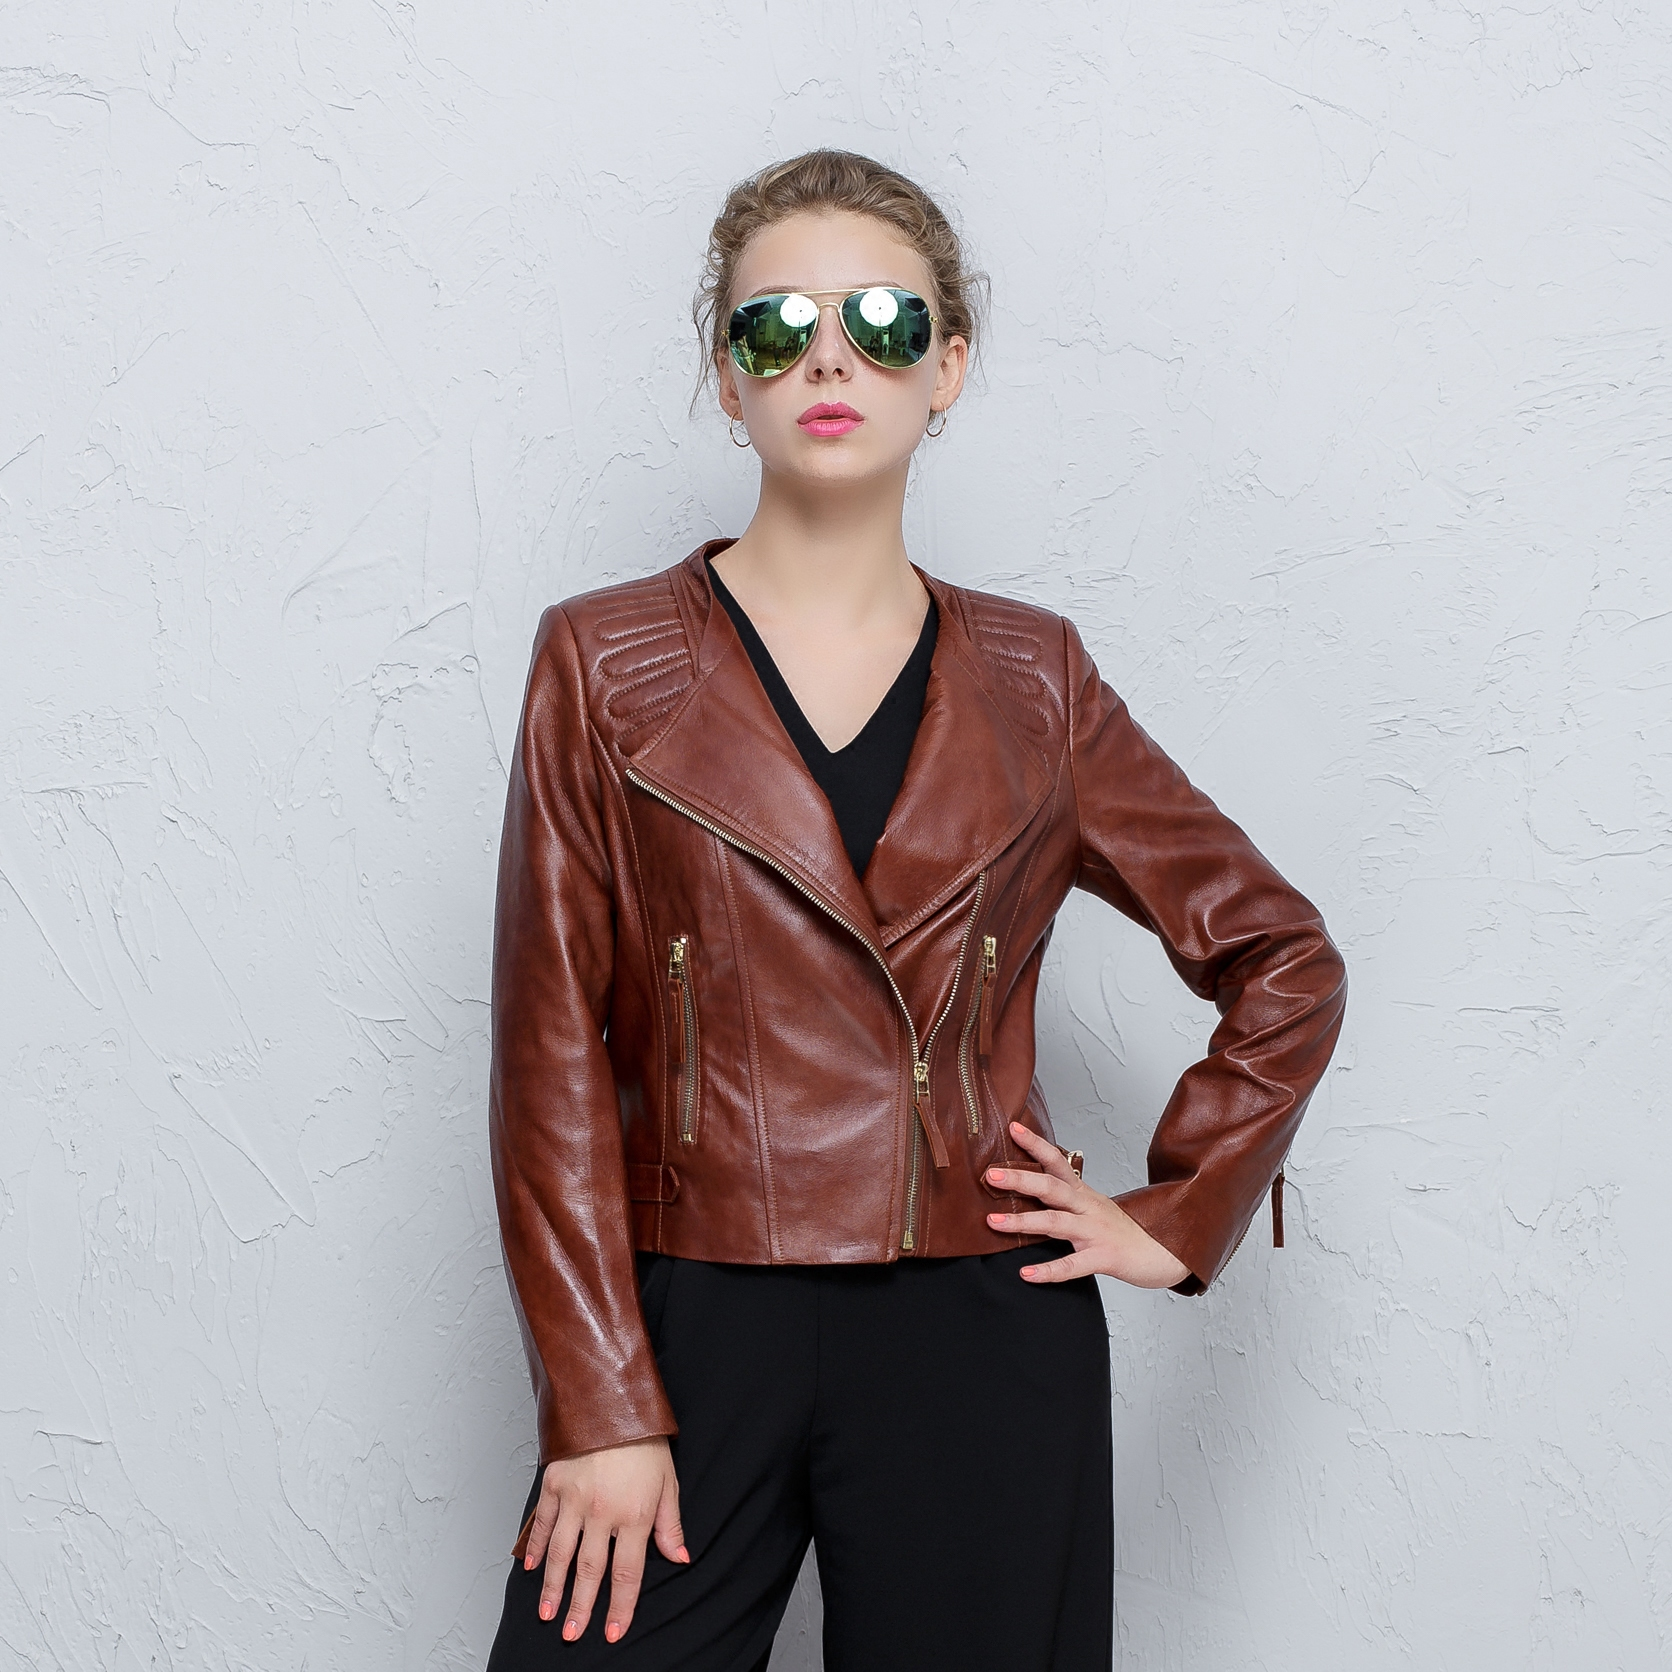 sheepskin jacket Large size Genuine Leather Short paragraph locomotive clothing fashion Female Slim Women autumn famous brand(China (Mainland))